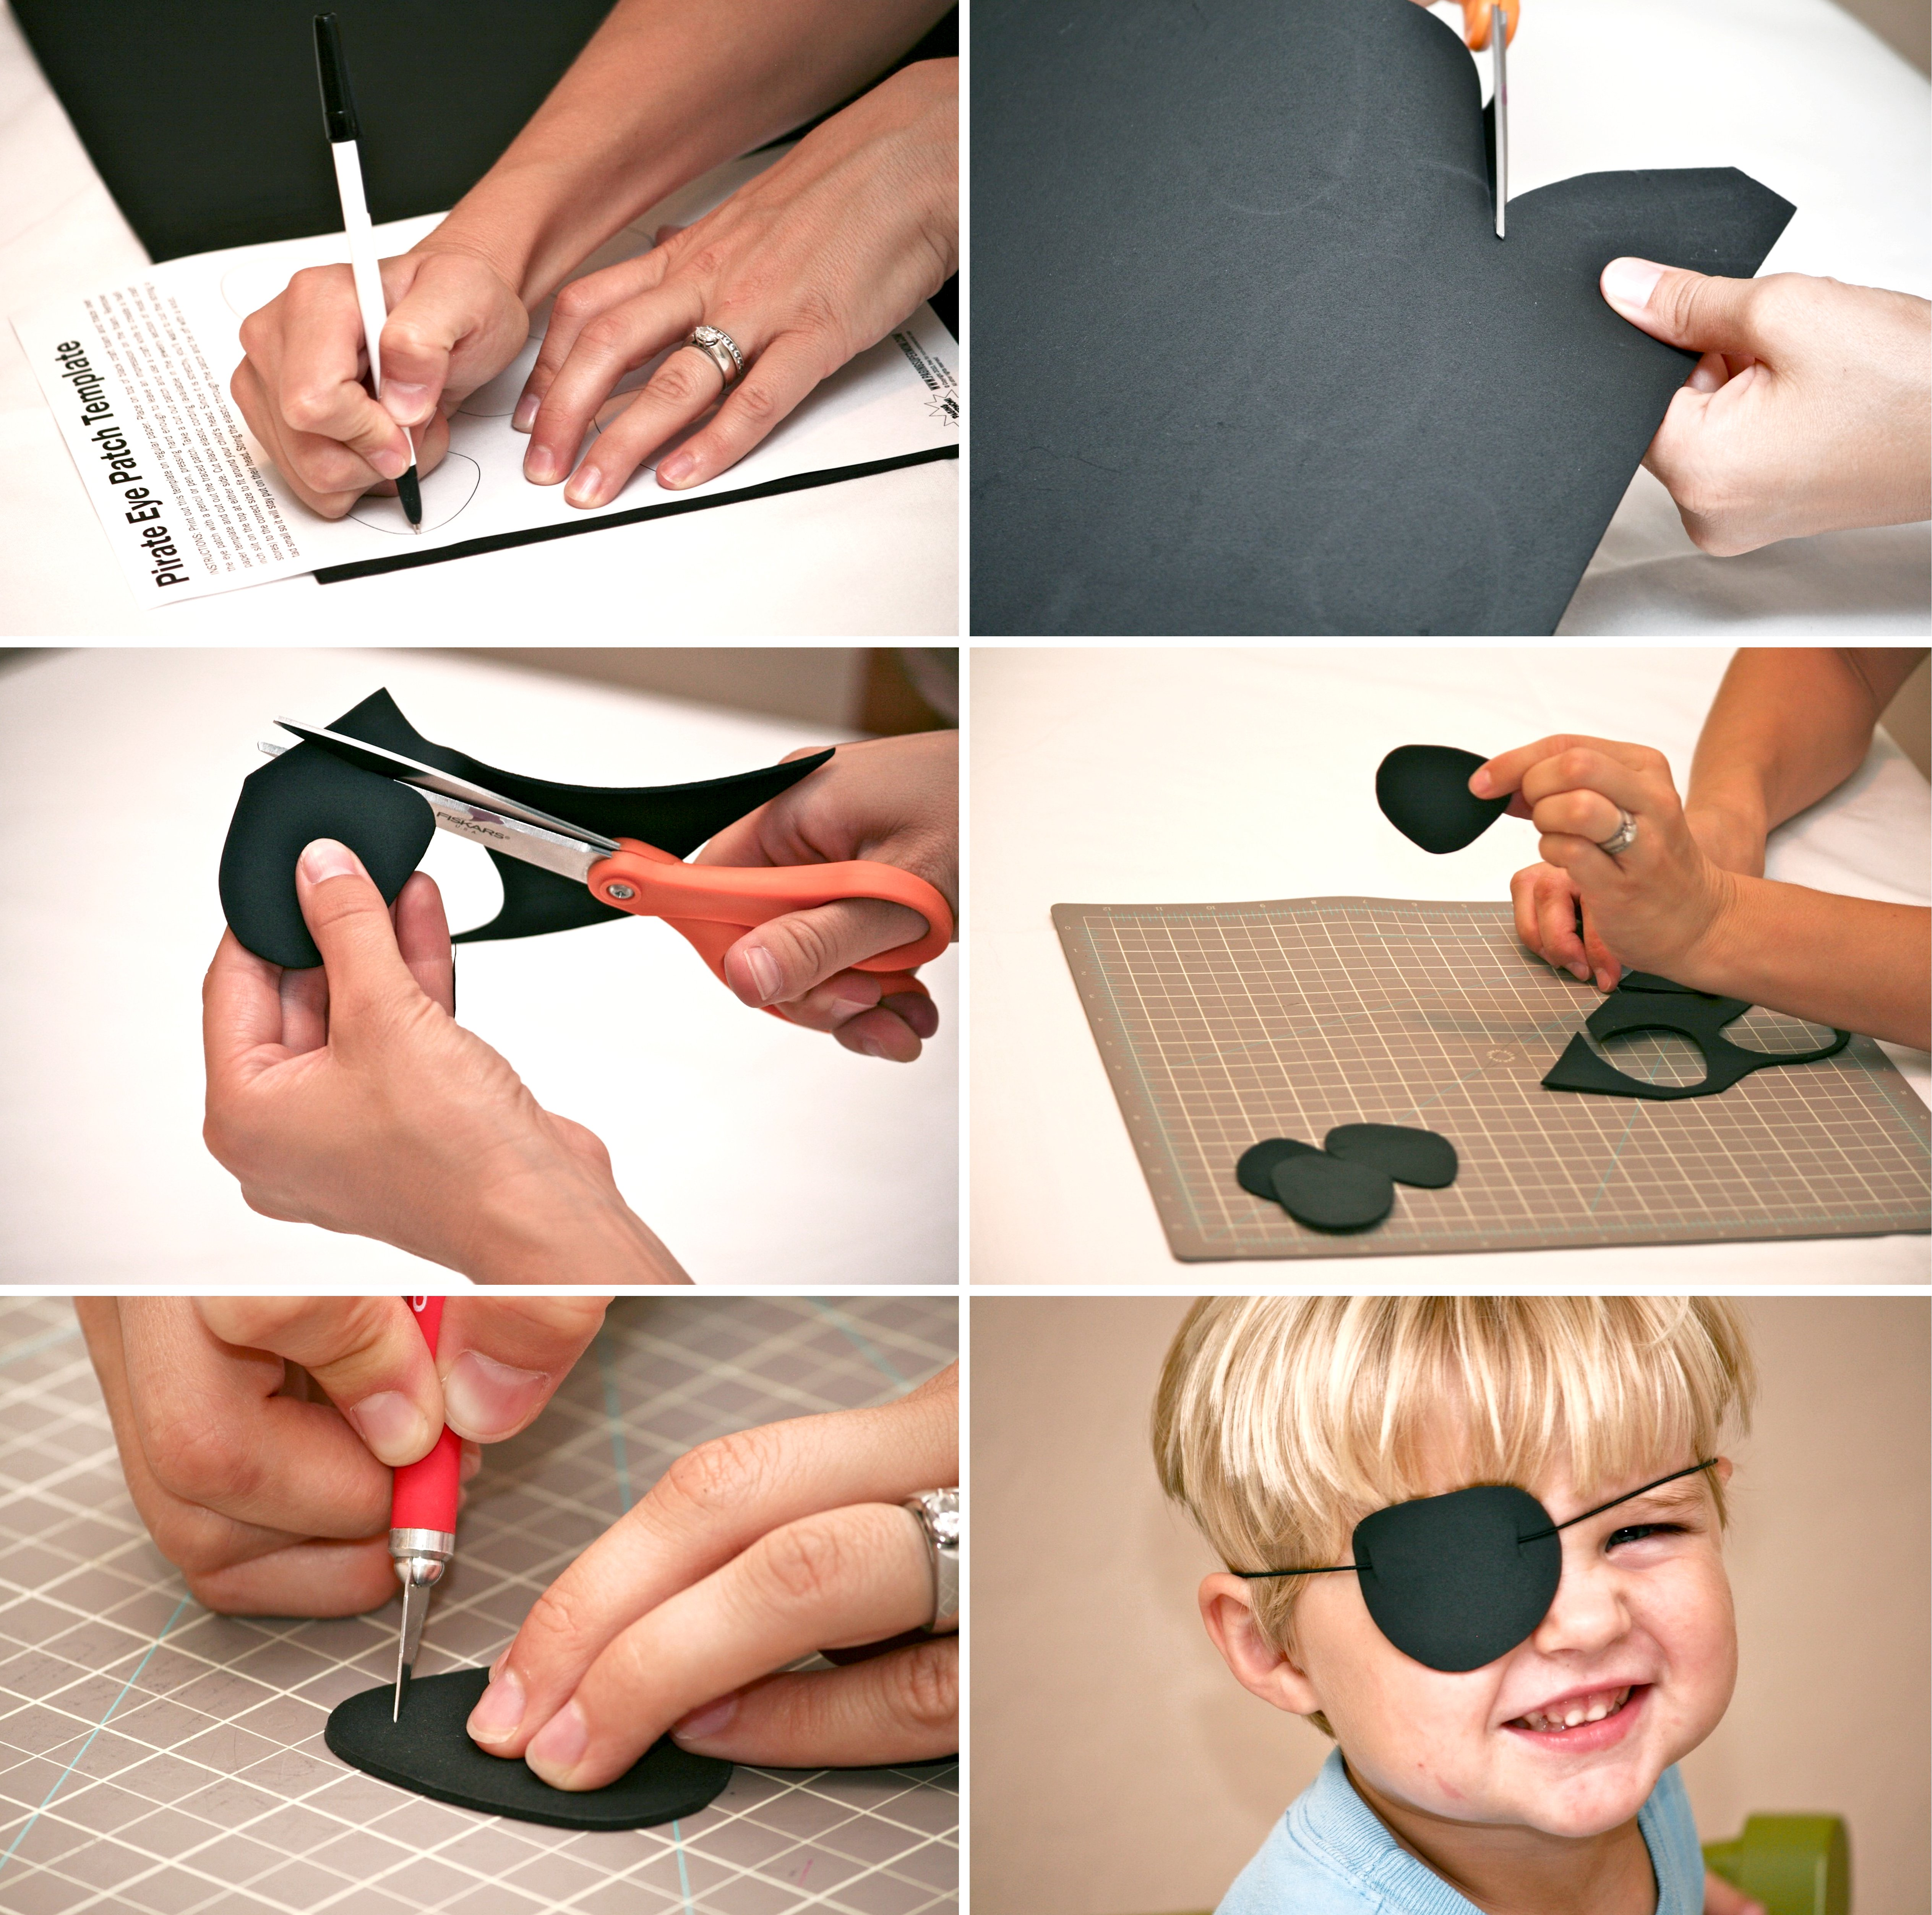 How To Make A Pirate Eye Patch With Free Printable Template Via Pagingsupermom